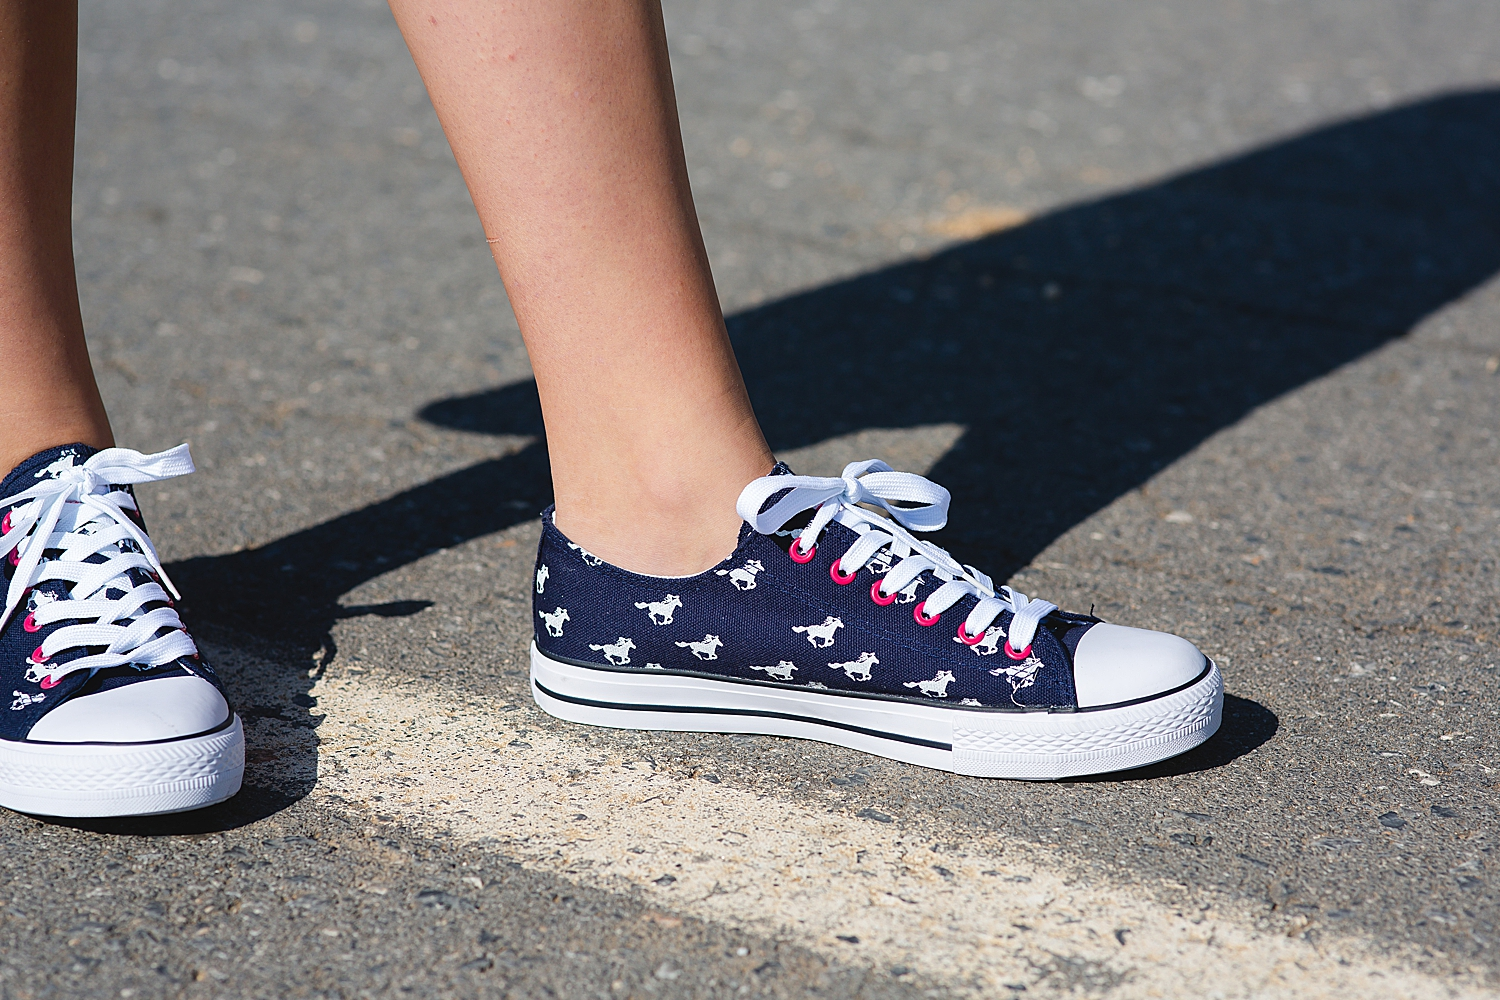 Cute Casual Shoes for Girls Who Love